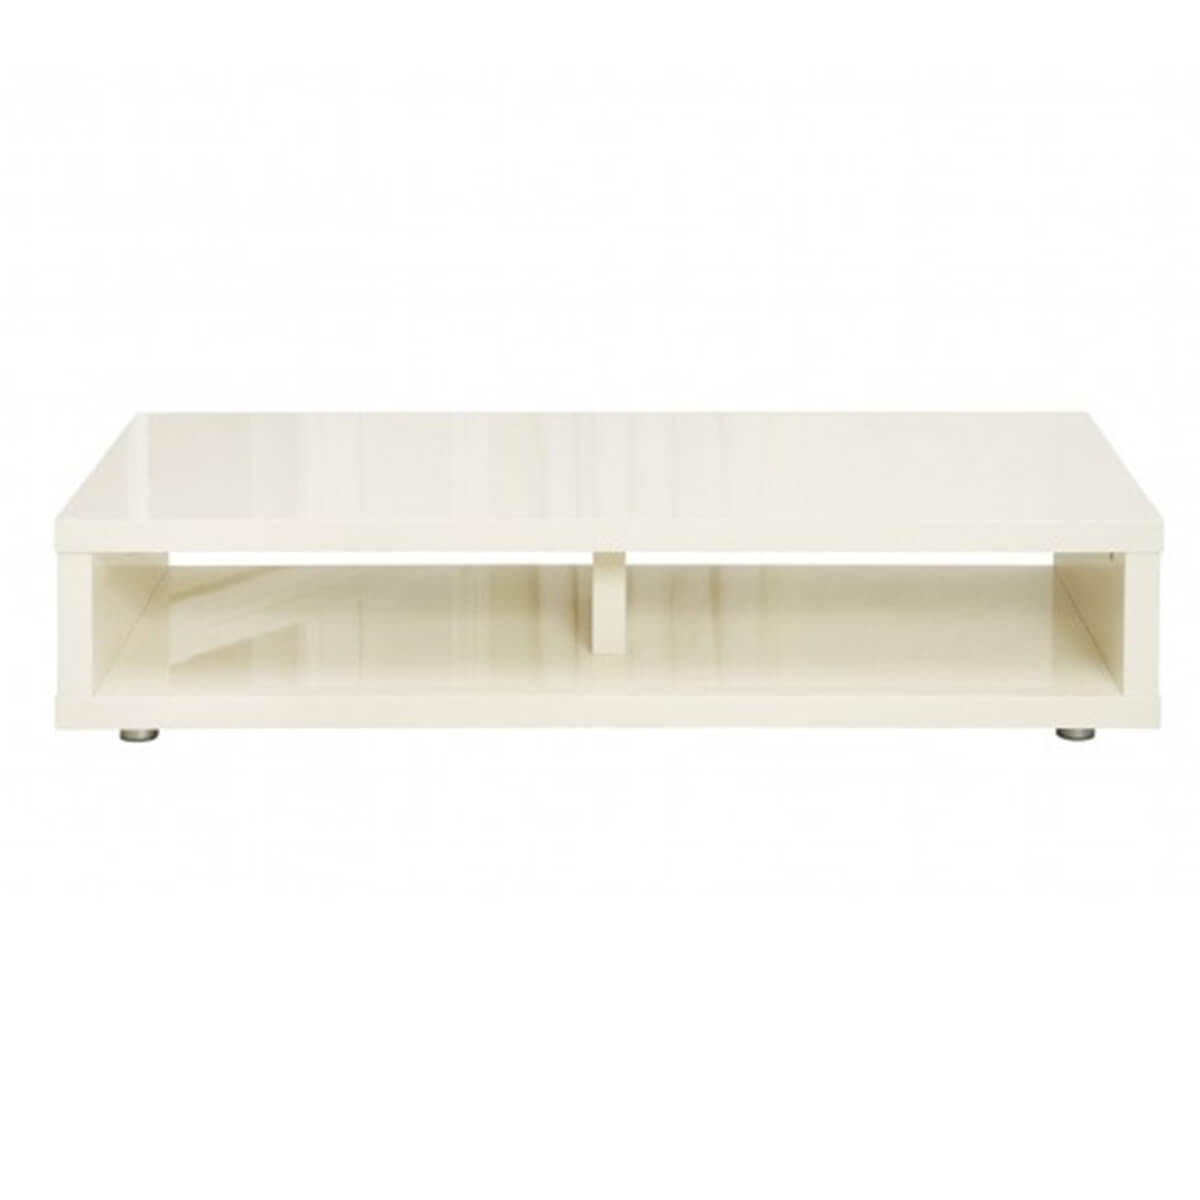 Ayla Media TV Stand 110cm High Gloss Cream